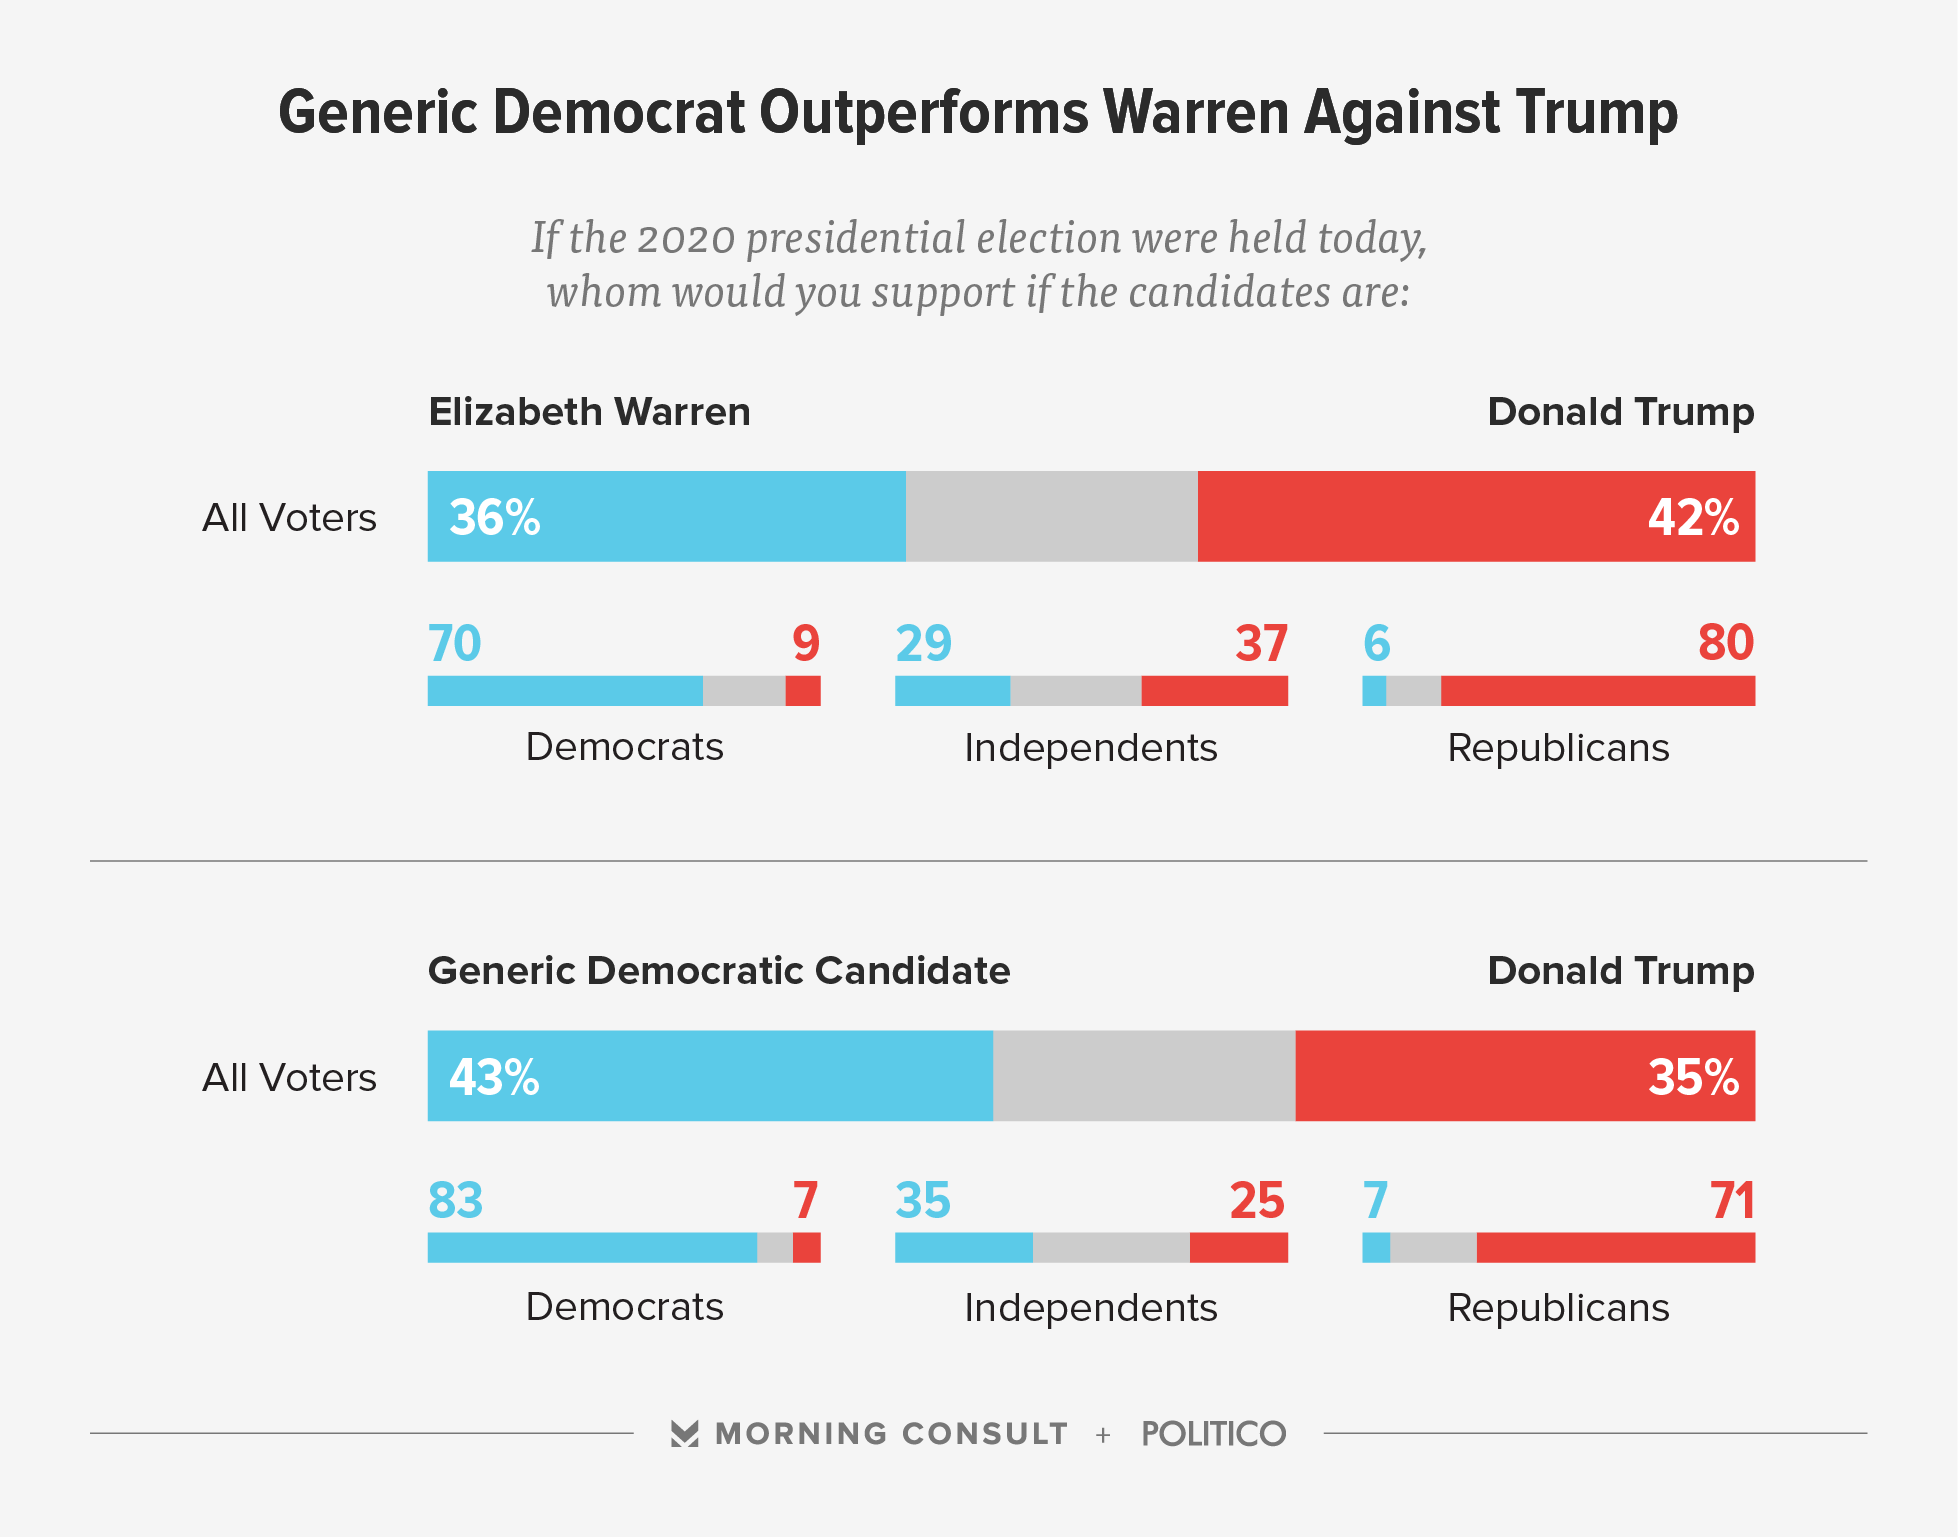 New Poll Says Donald Trump Would Beat Elizabeth Warren in 2020